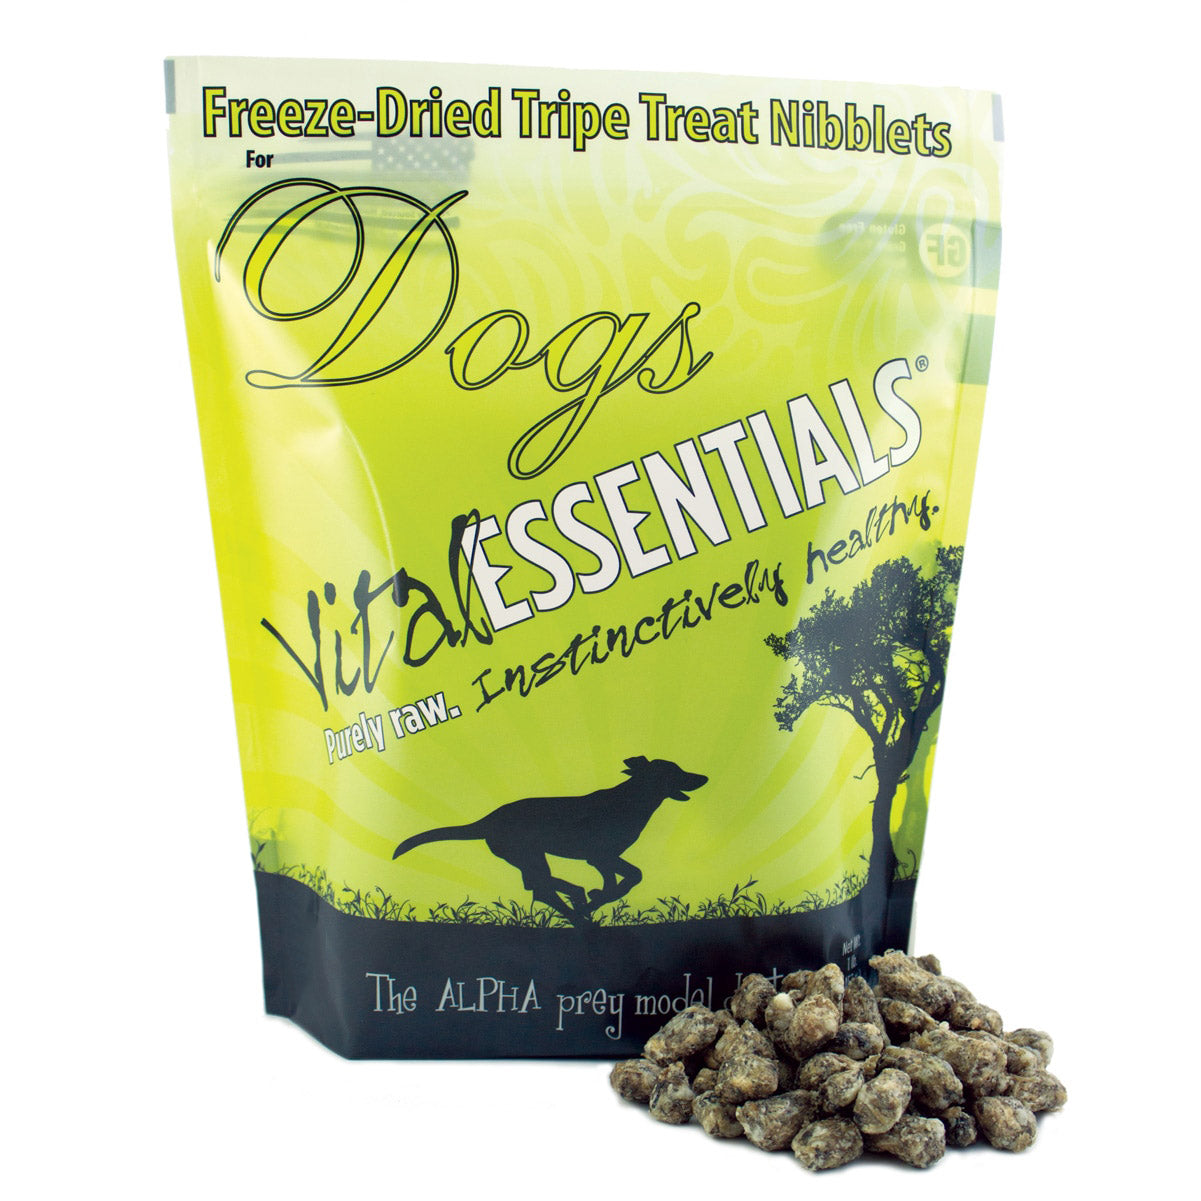 Freeze-Dried Nibblets Beef Tripe for Dogs Treats